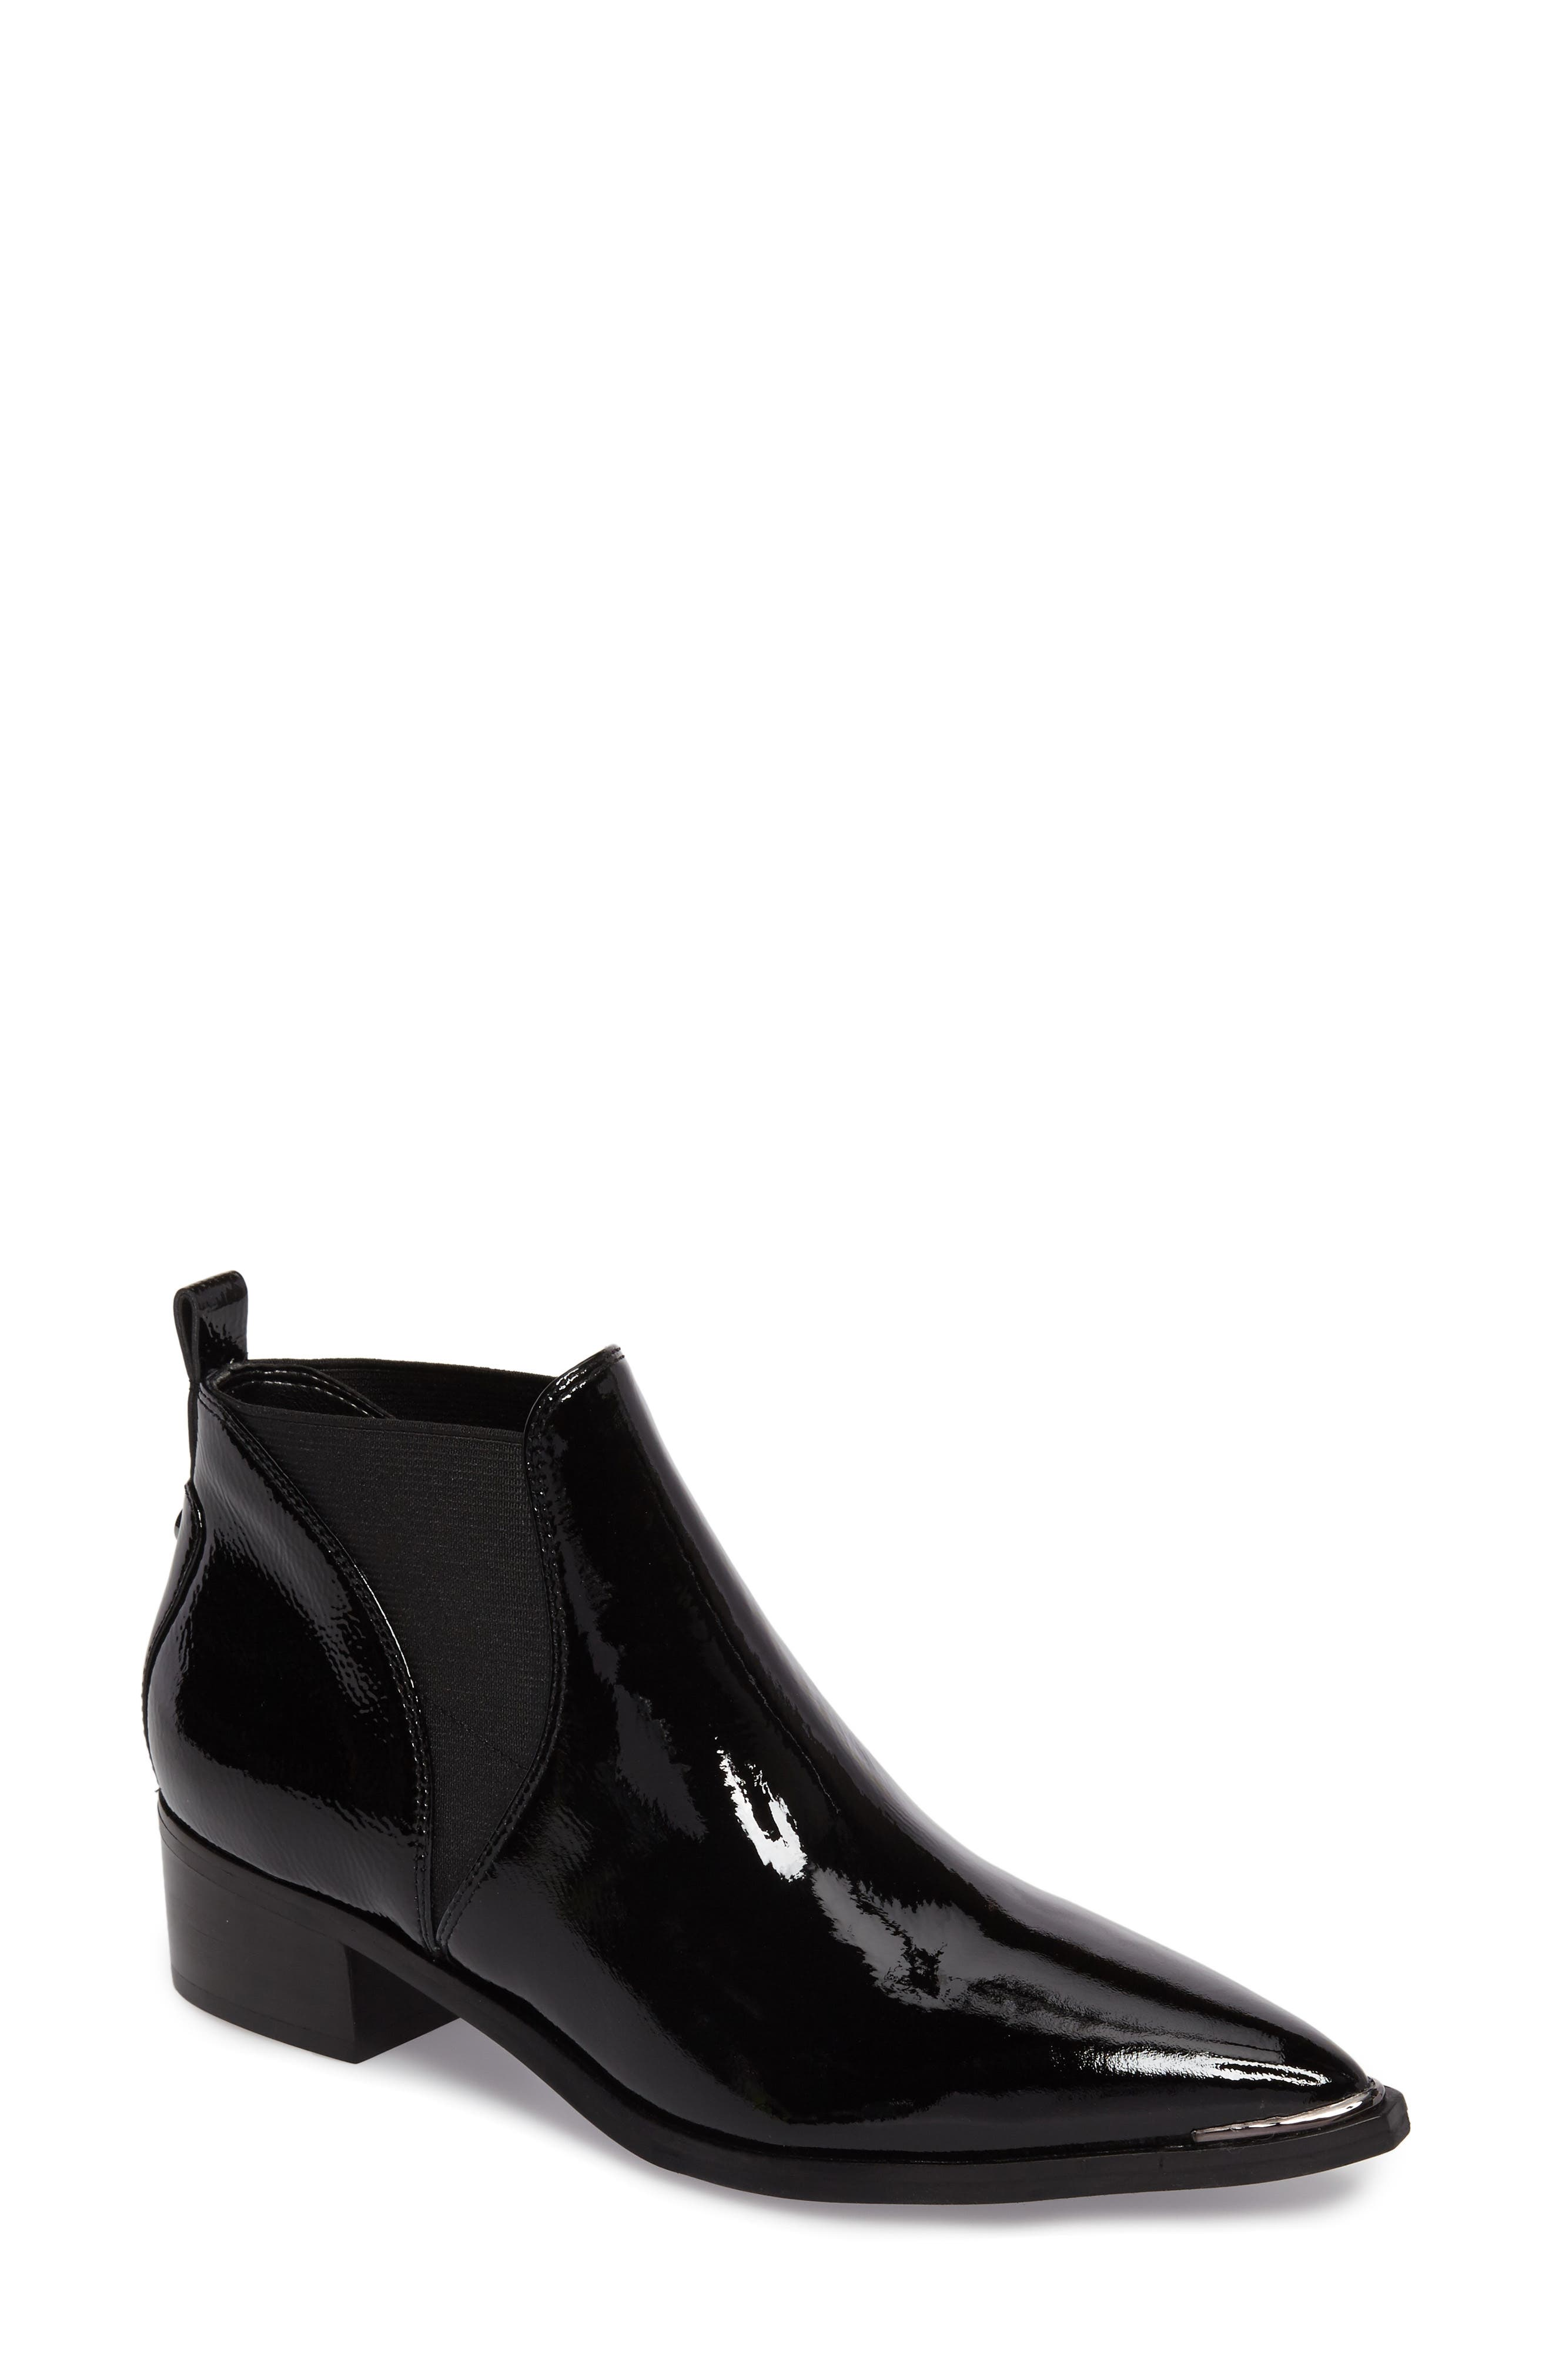 Yellin Pointy Toe Chelsea Boot,                             Main thumbnail 1, color,                             Black Patent Leather